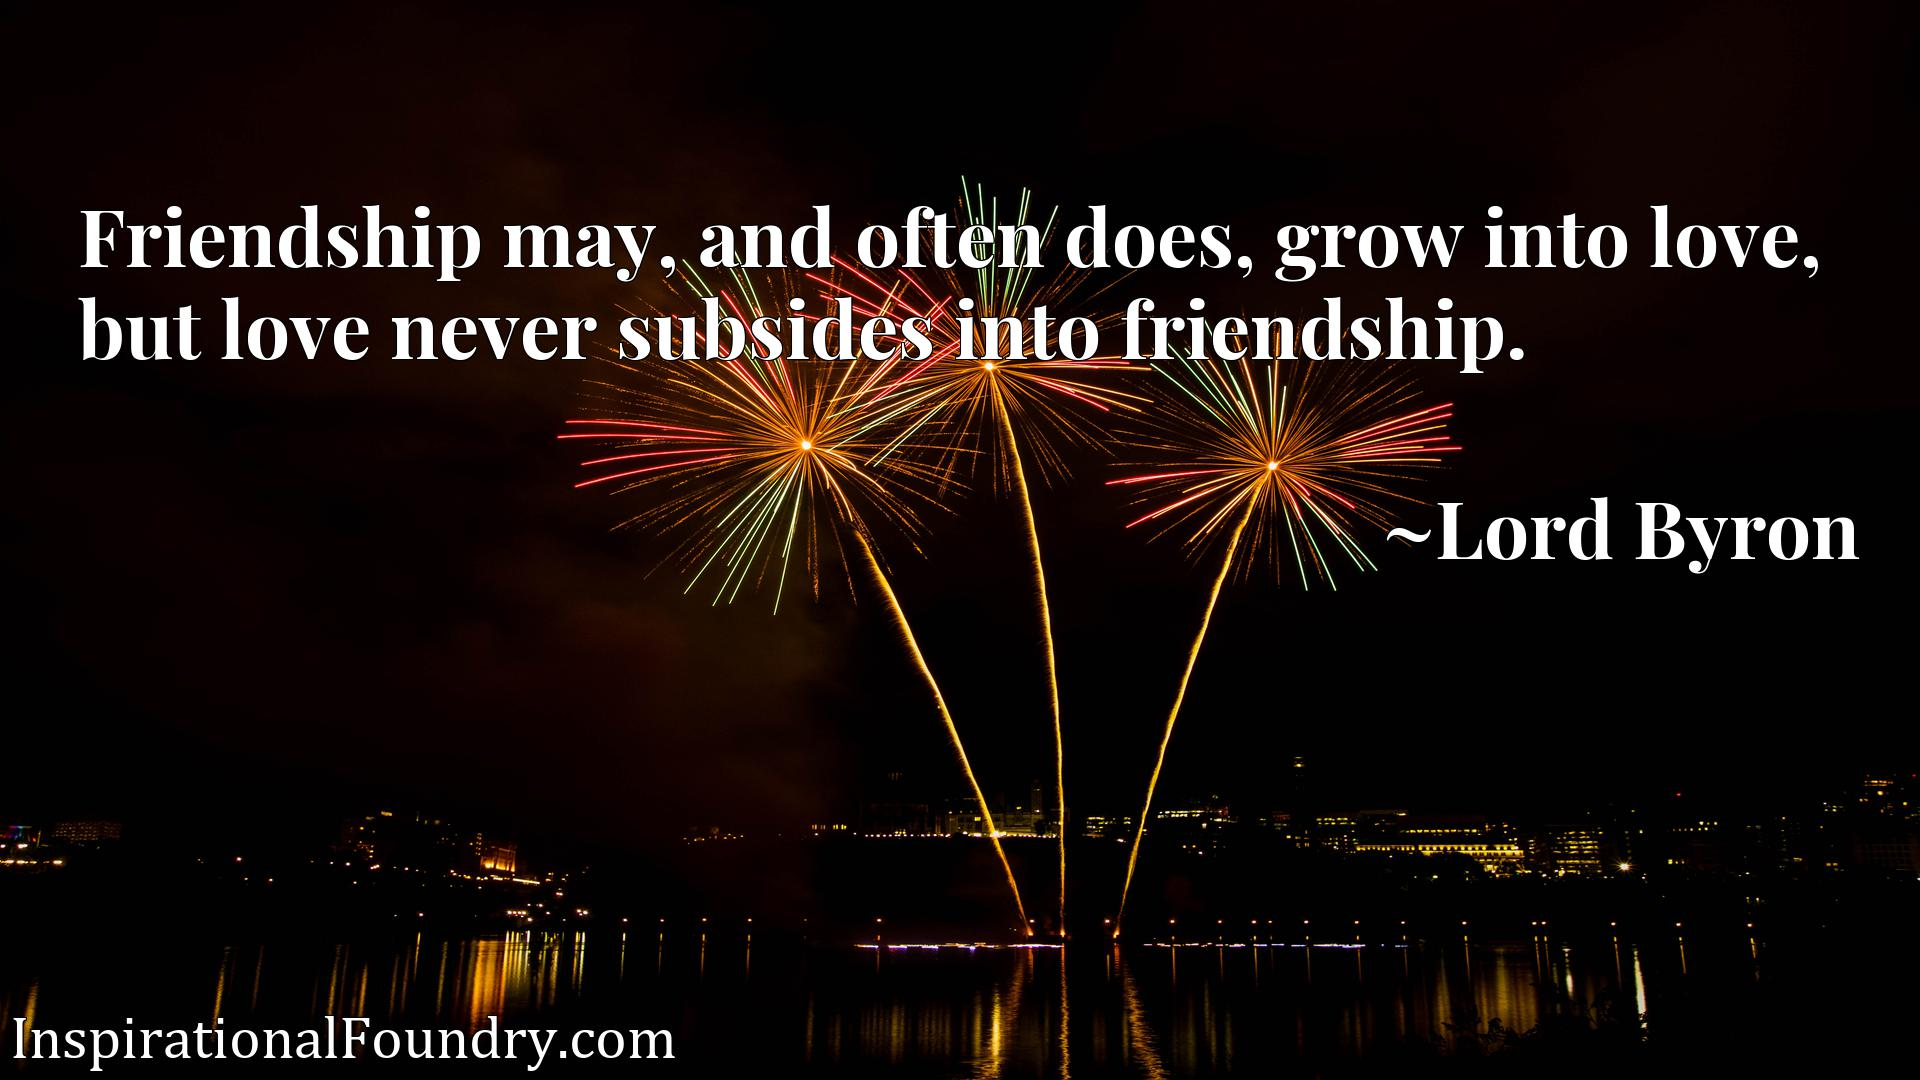 Friendship may, and often does, grow into love, but love never subsides into friendship.